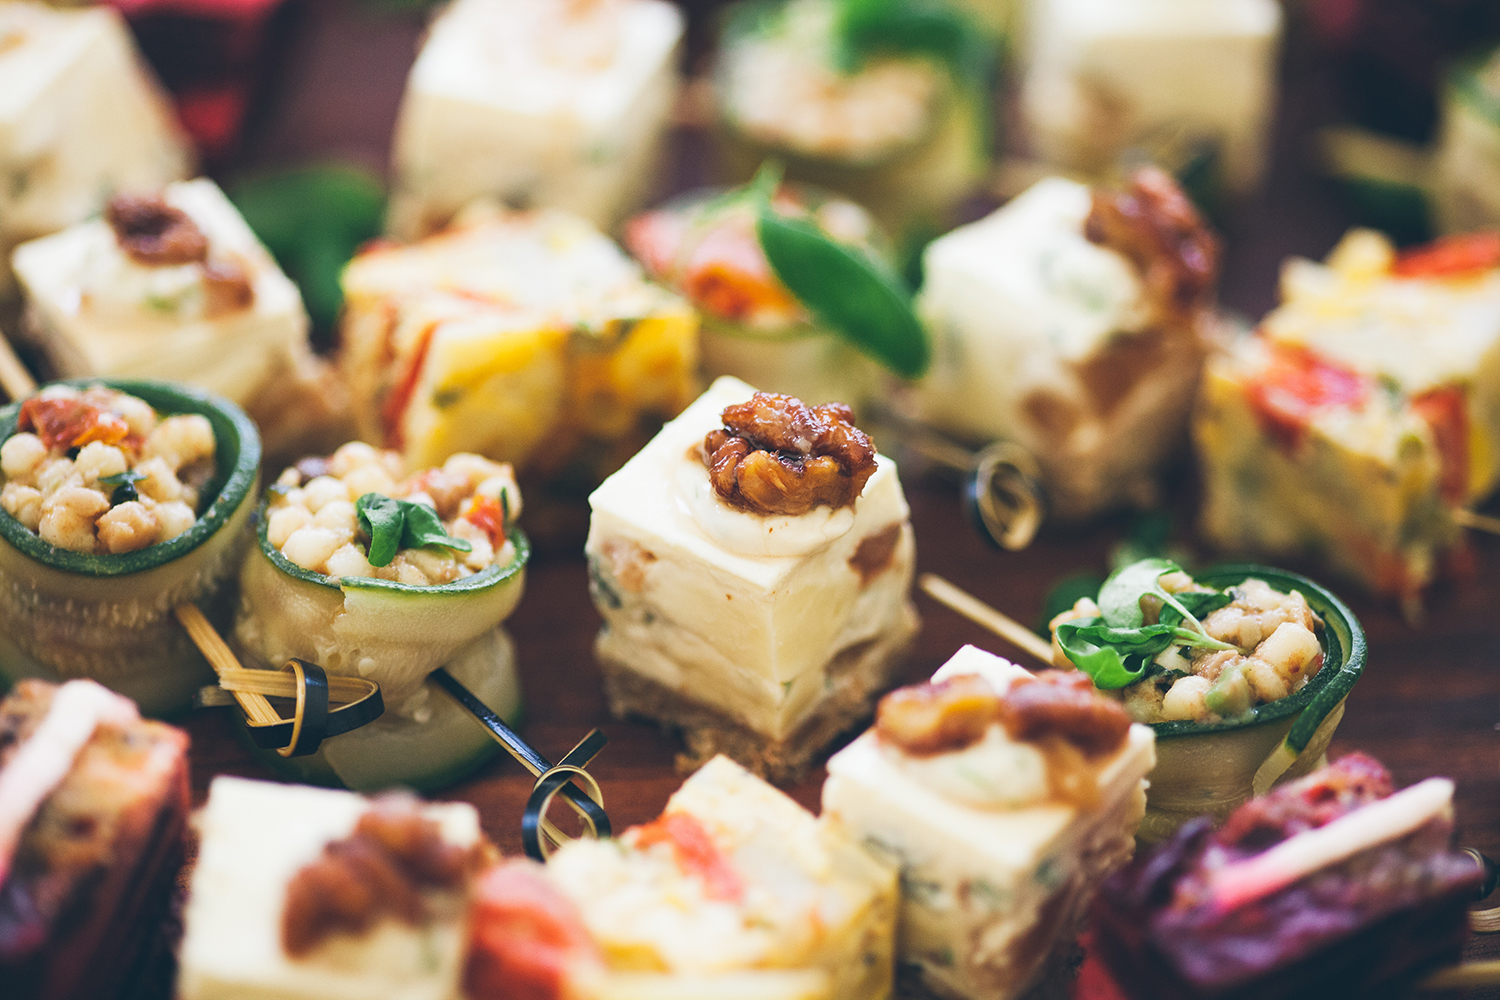 CRAFT SERVICES - Photoshoots/Videoshoots, production sets, corporate lunches; we've done them all. We make meals easier so you can focus on money making.